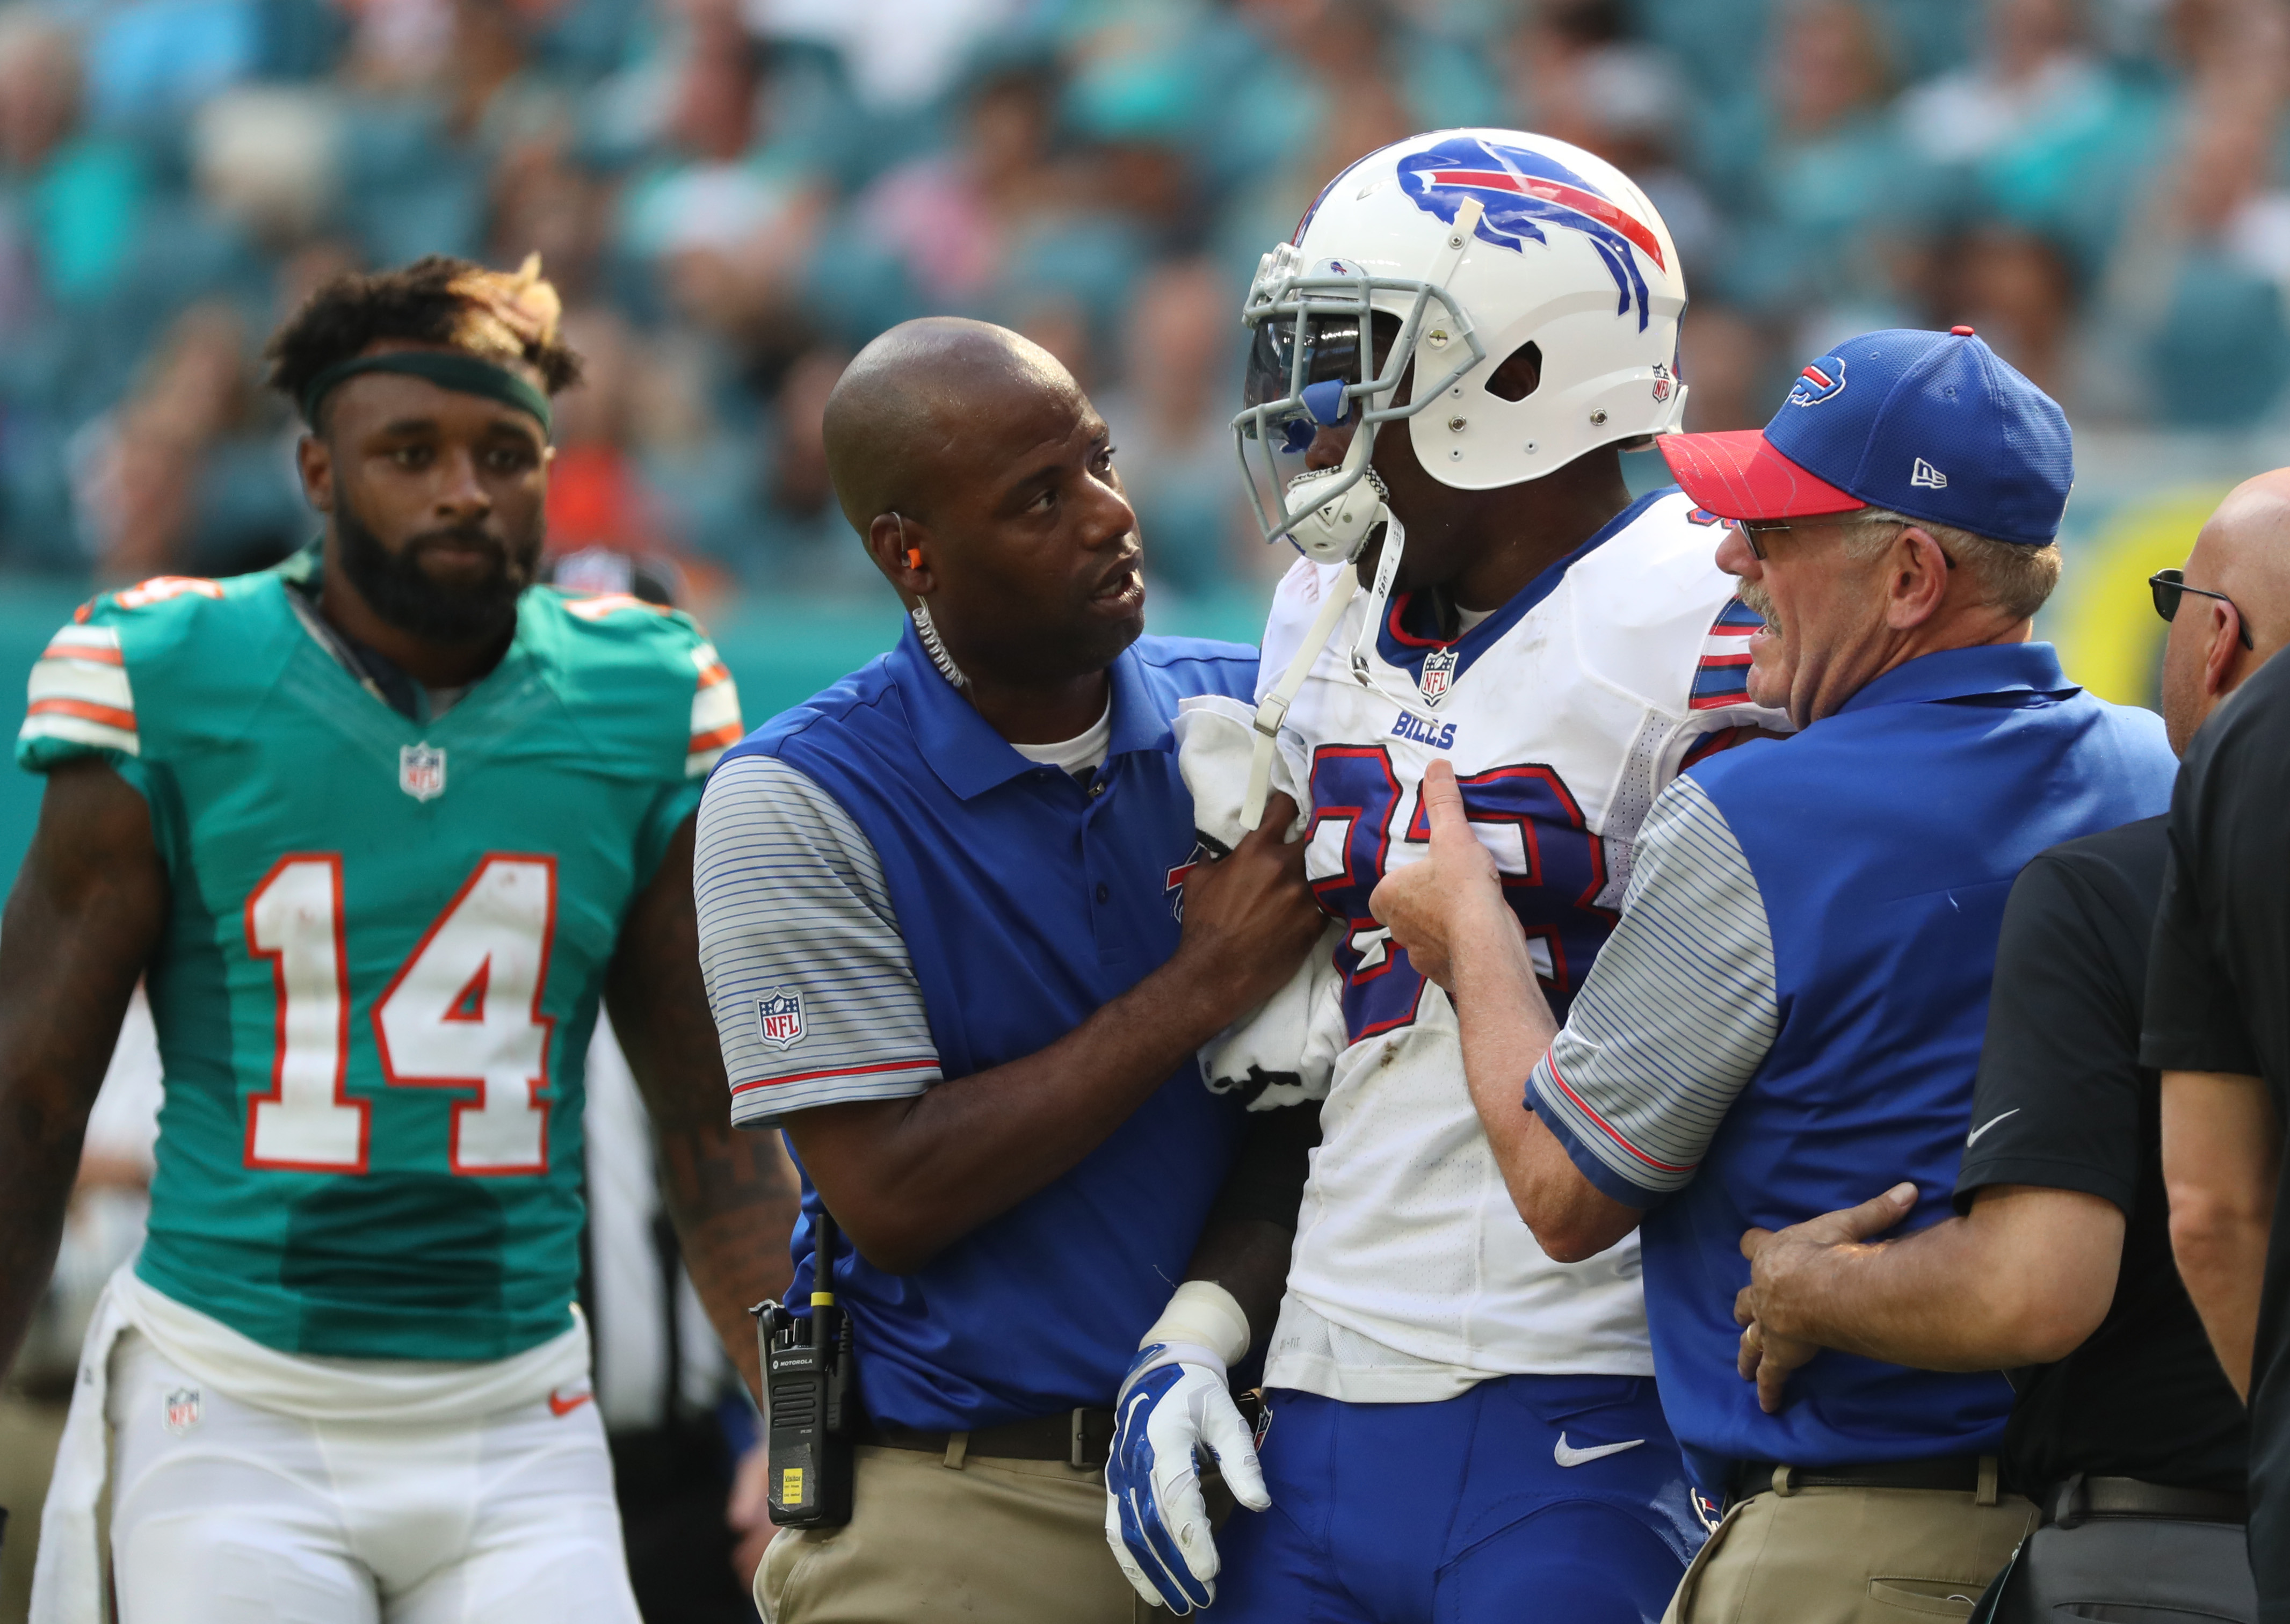 Buffalo Bills strong safety Aaron Williams (23) is helped off the field after being hit by the Dolphins' Jarvis Landry (14, at left).  (James P. McCoy/Buffalo News)